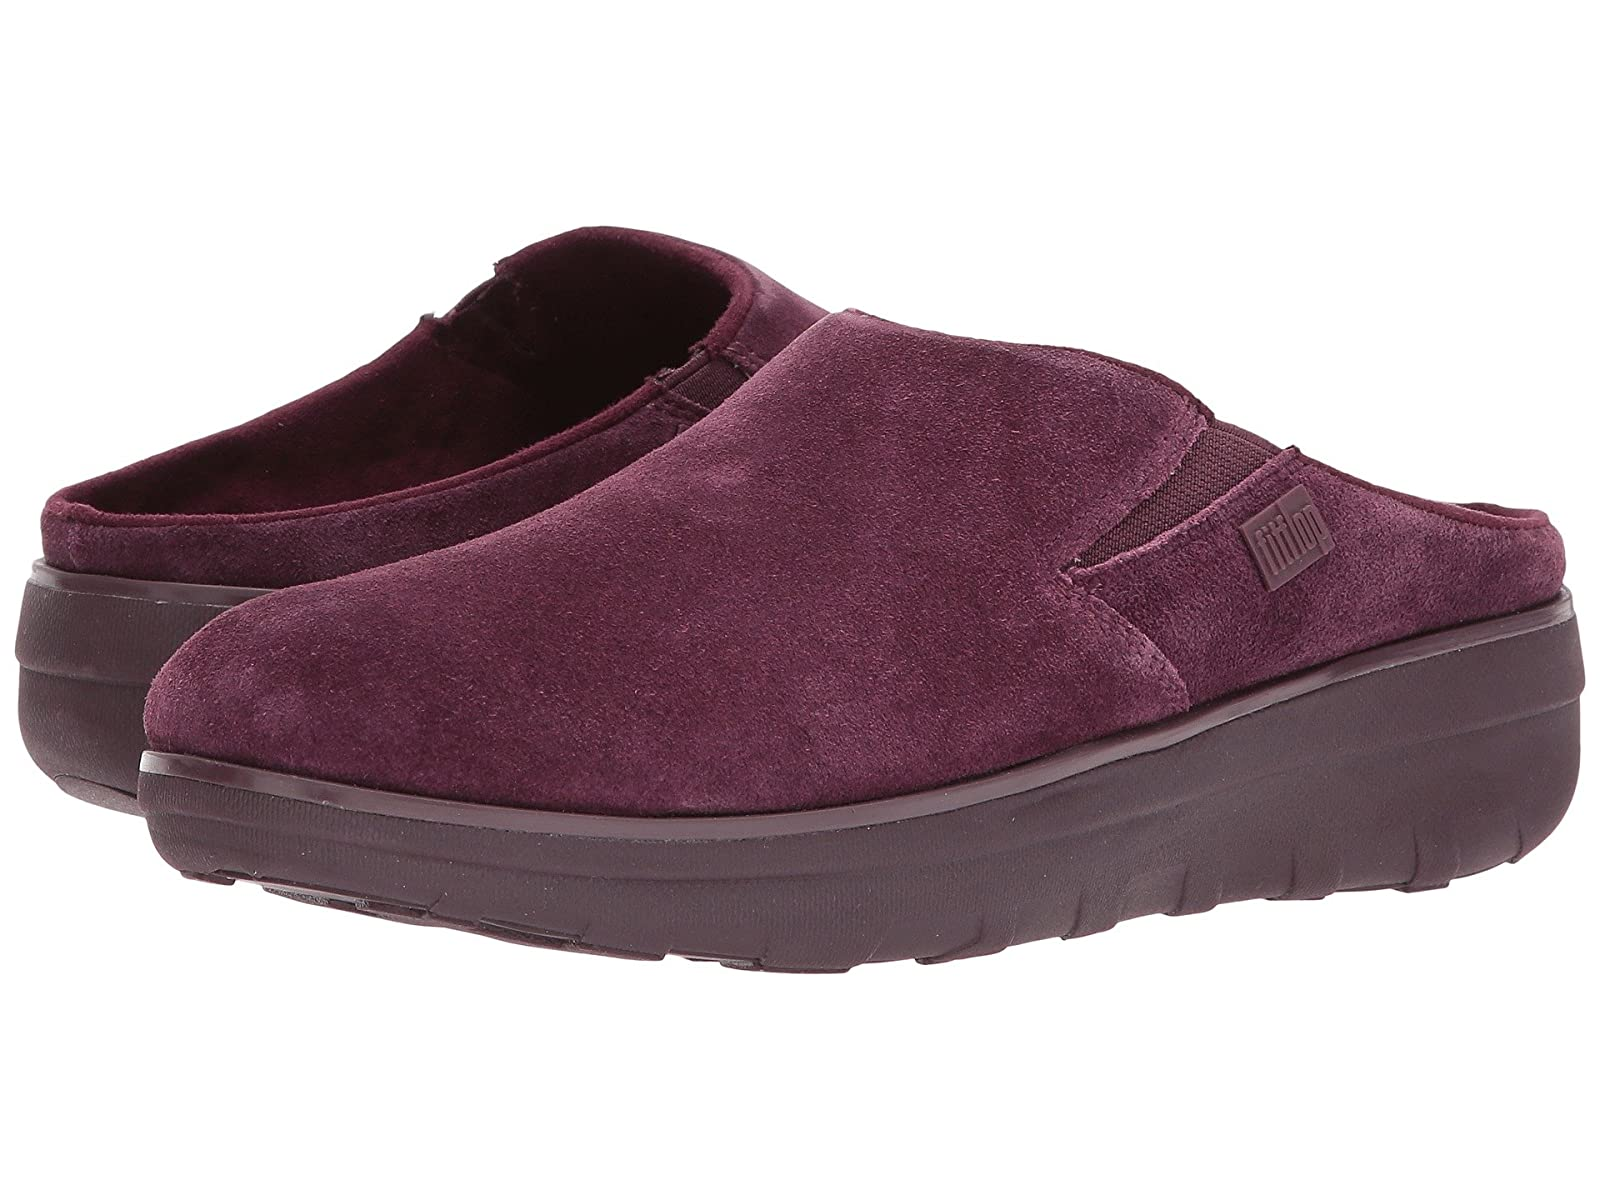 FitFlop Loaff Suede ClogsCheap and distinctive eye-catching shoes